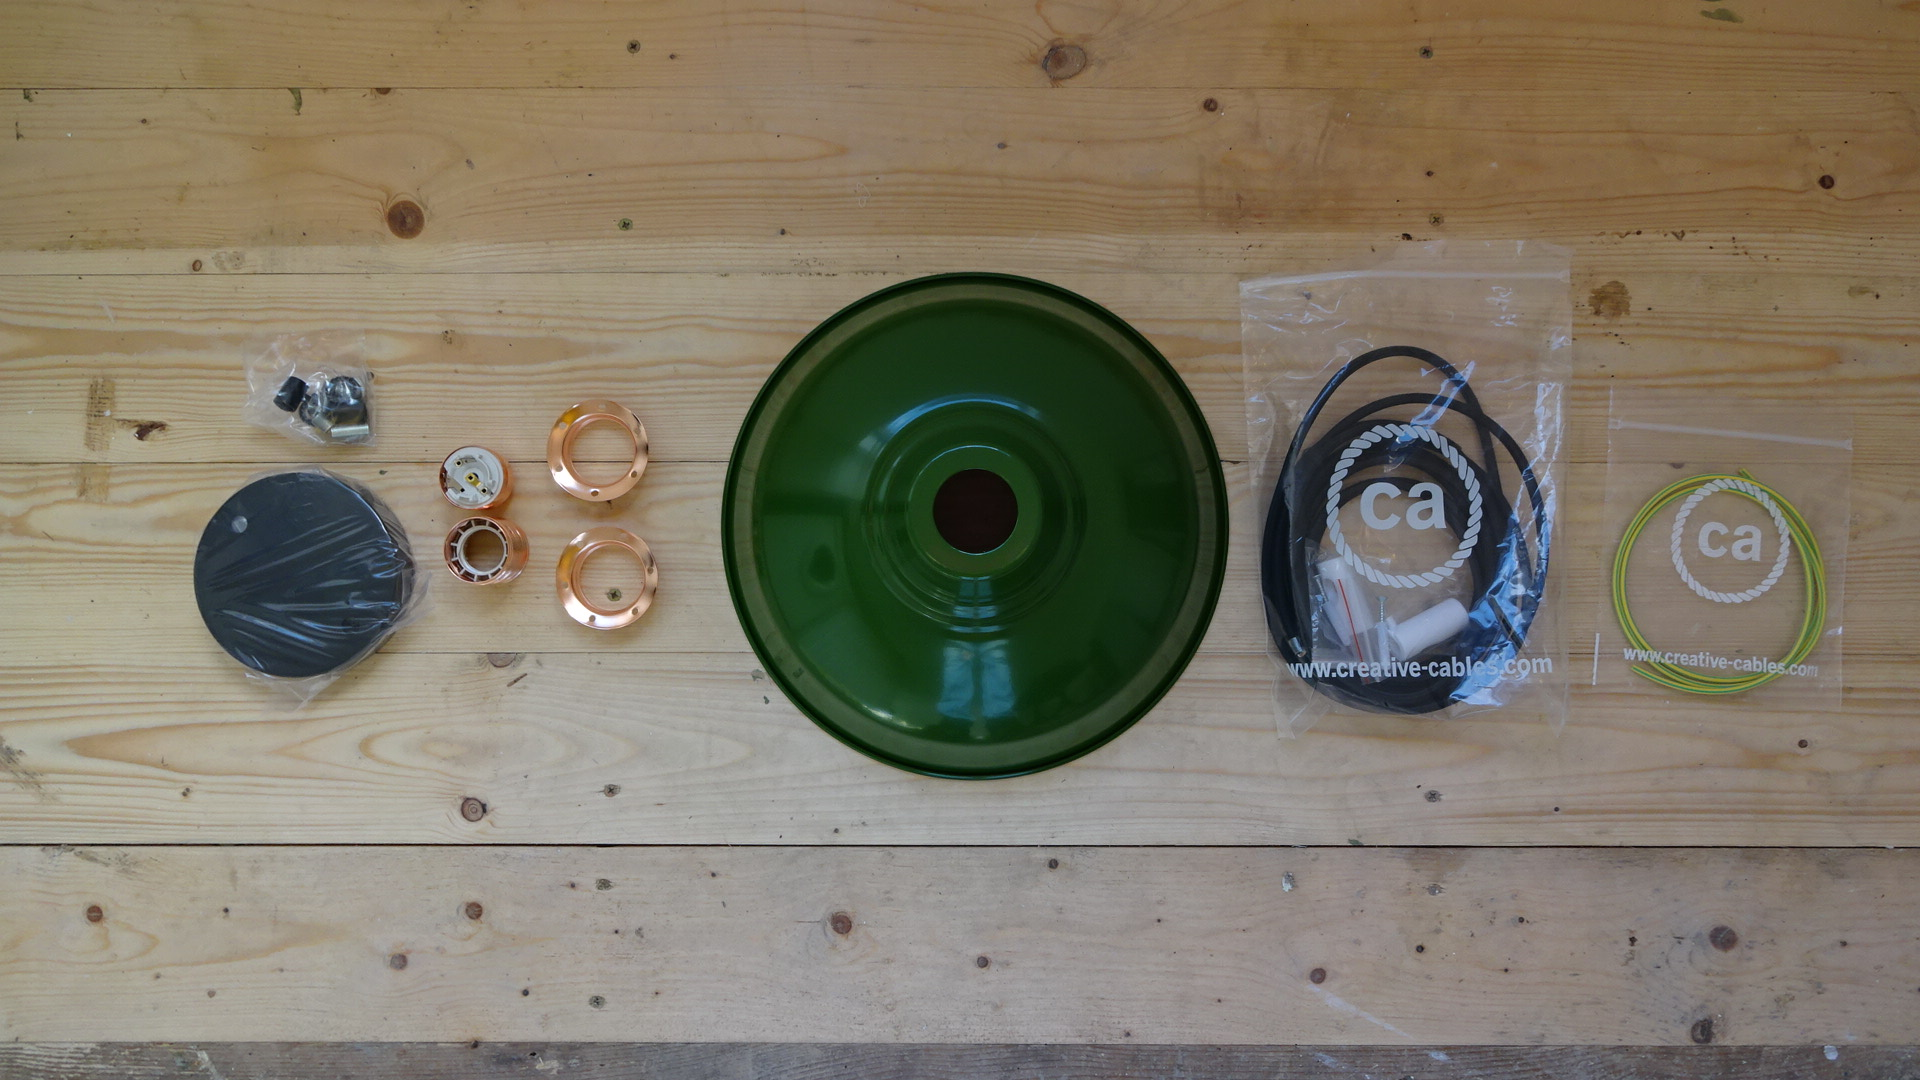 Fittings from L to R: 2 way black, metal rose, lamp holder and fittings, green enamel pendant shade, black raylon flex, earth sheathing